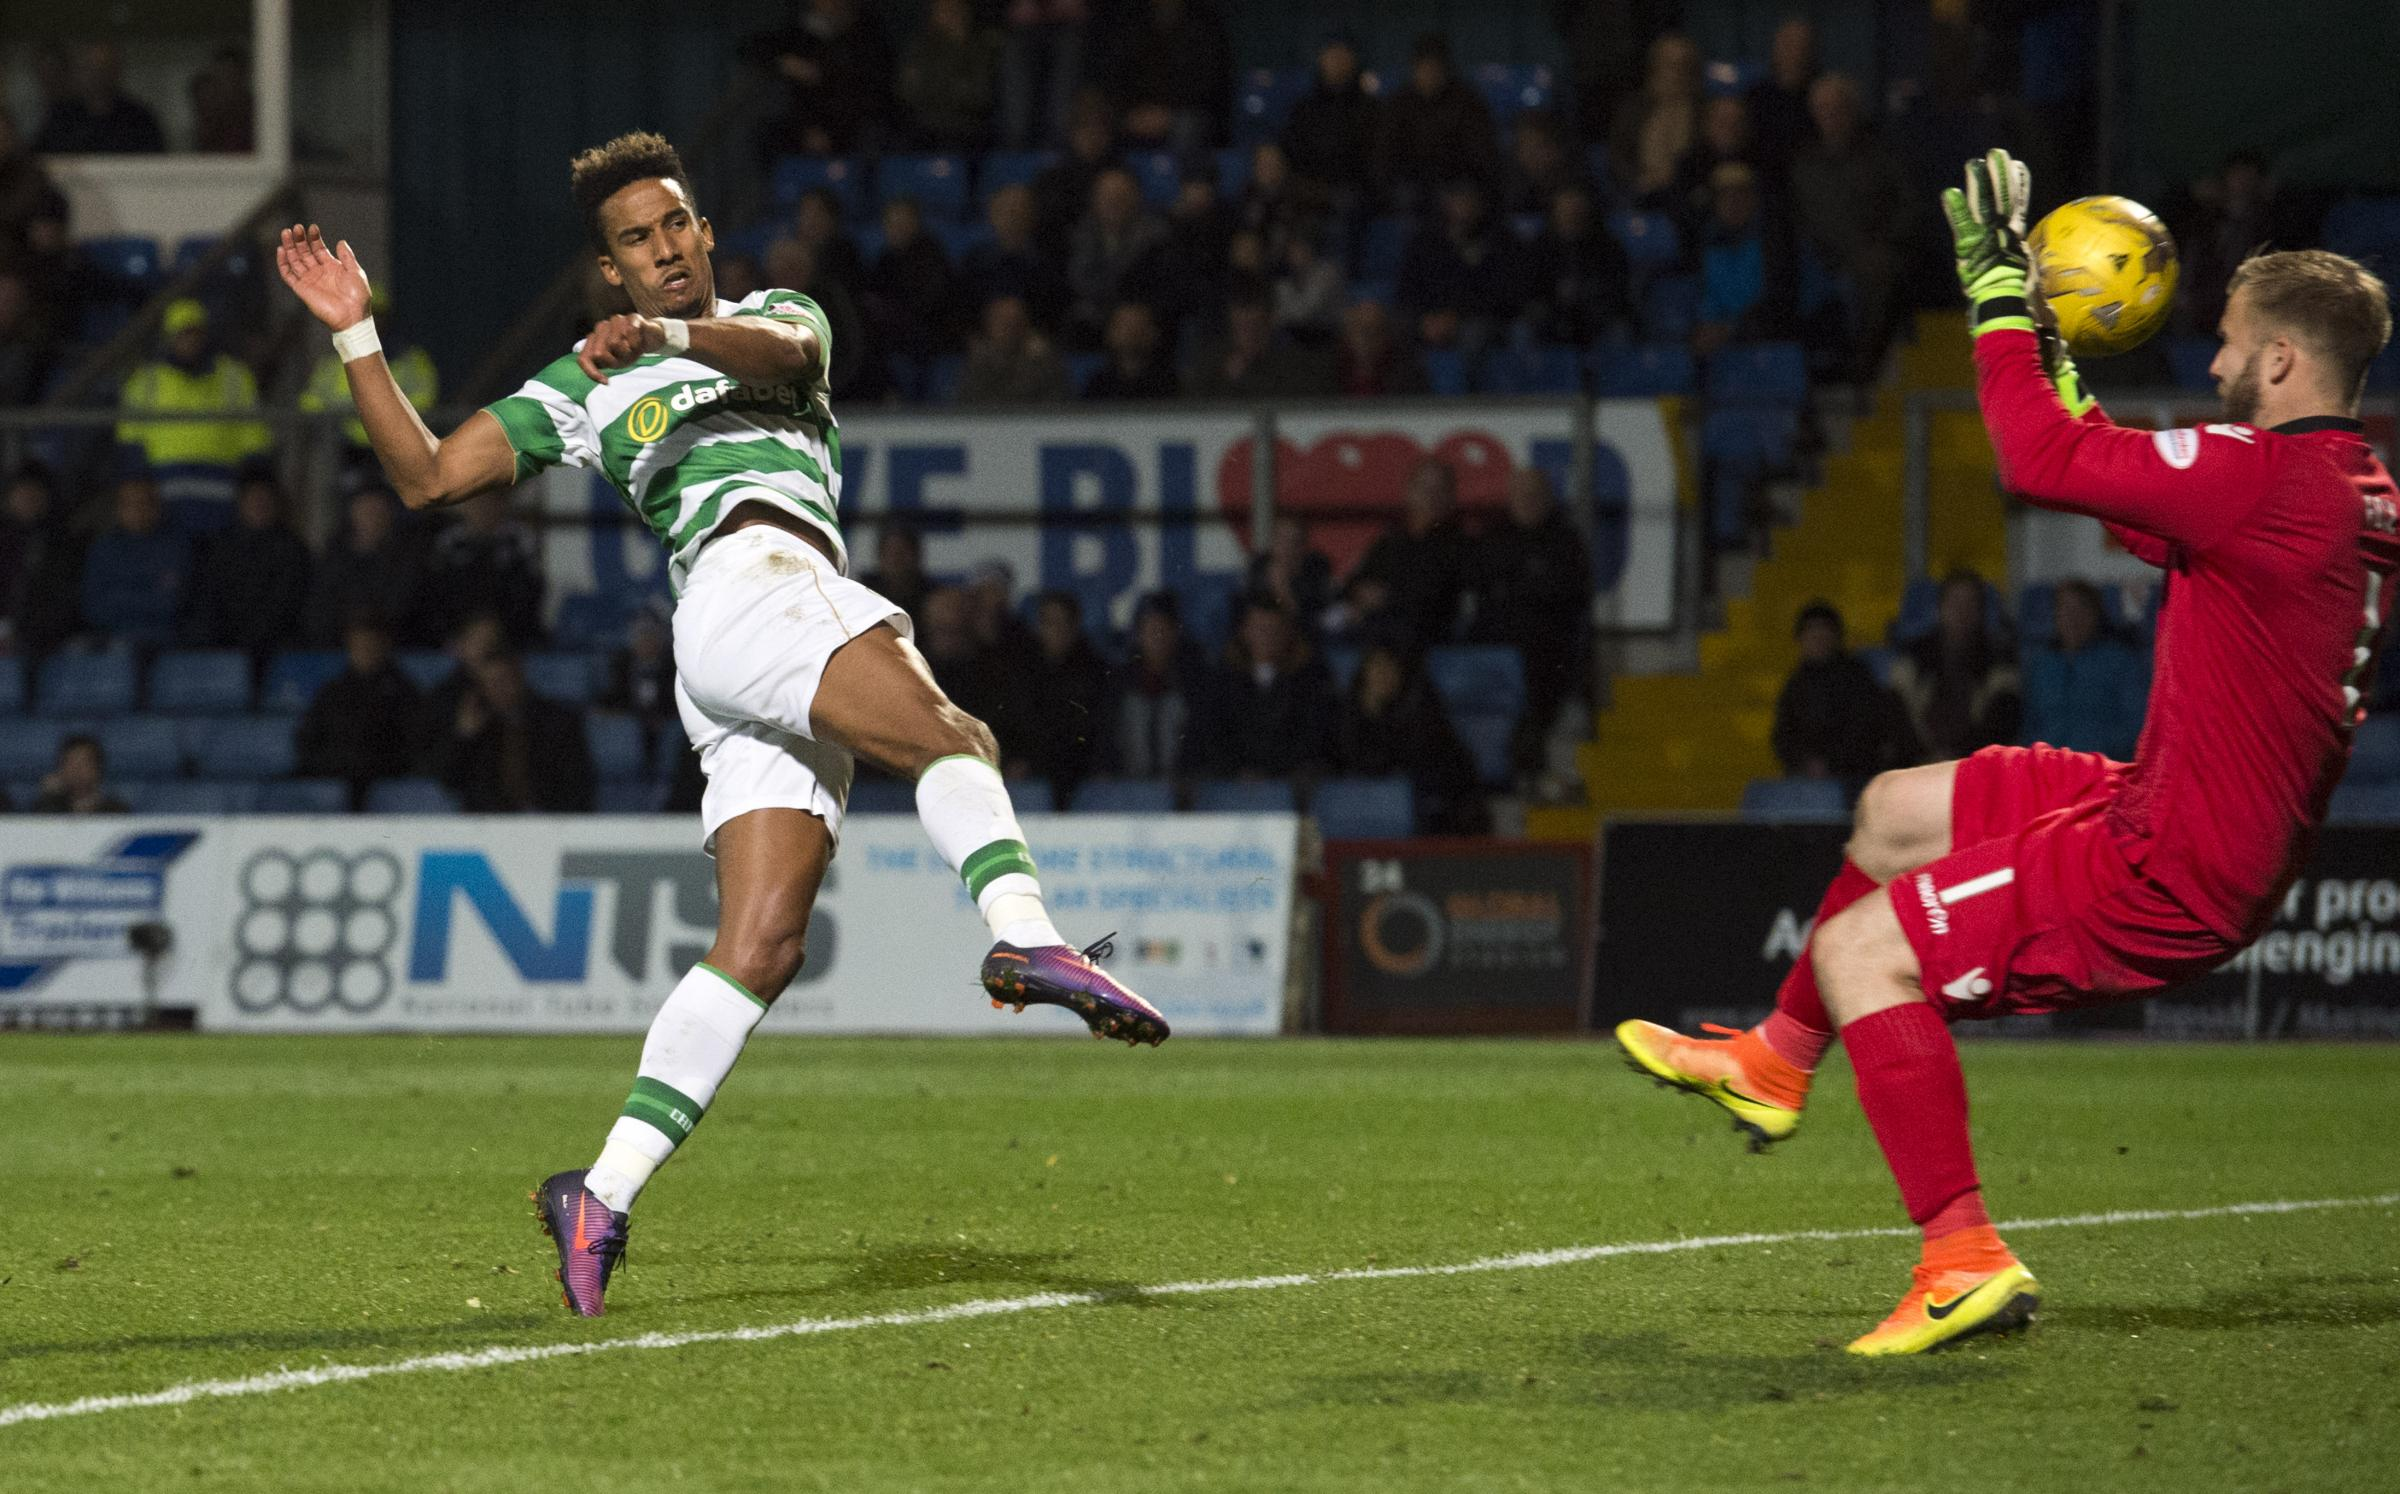 Borussia Monchengladbach 1-1 Celtic: Dembele penalty earns Scots a point